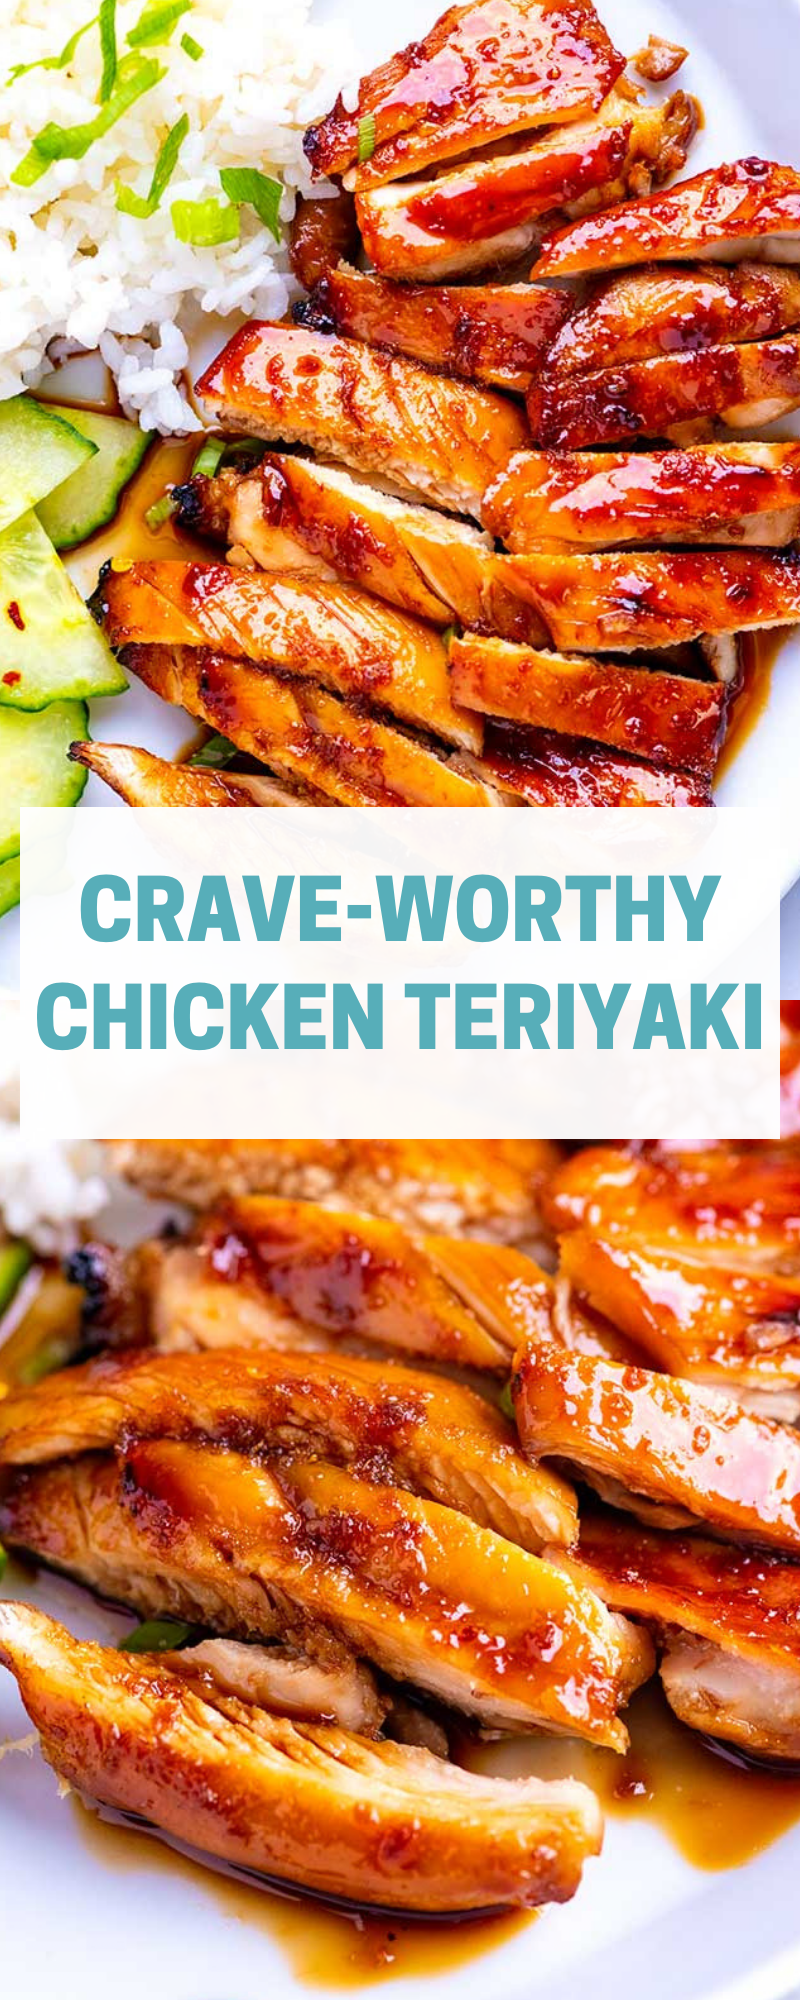 Crave-Worthy Teriyaki Chicken images